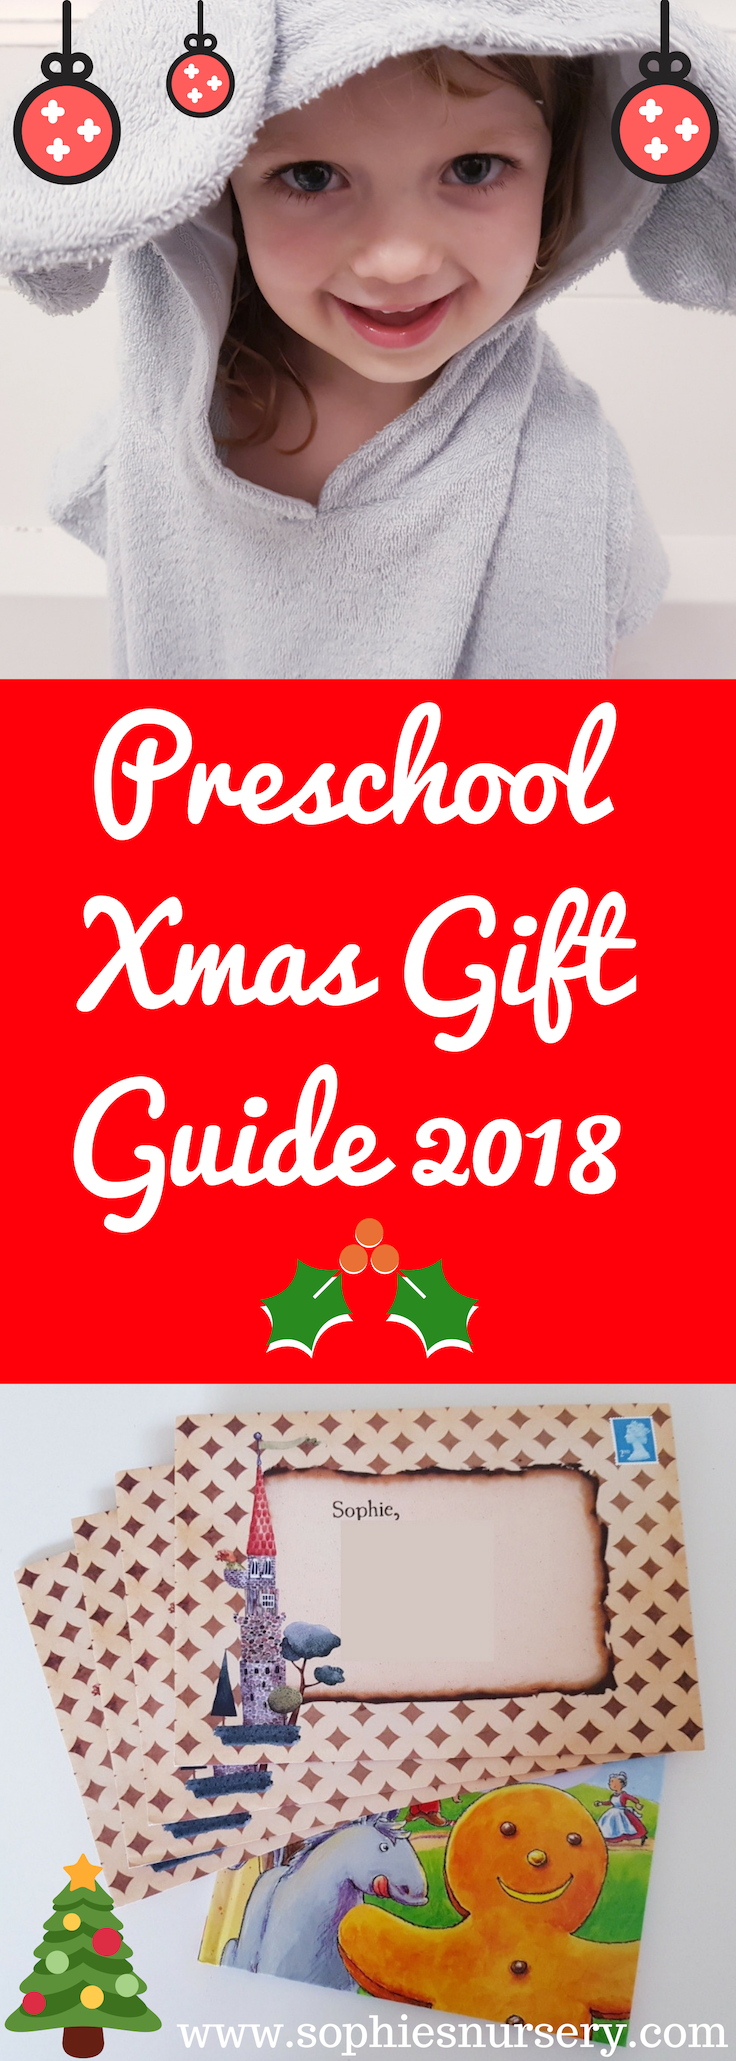 A fabulous selection of more unusual #preschool #Christmas gift ideas from subscription boxes to personalised storybooks. Perfect for Under 5s!  #Christmas2018 #giftideas #ChristmasGiftGuide #subscriptionbox #kidsbooks #personalised